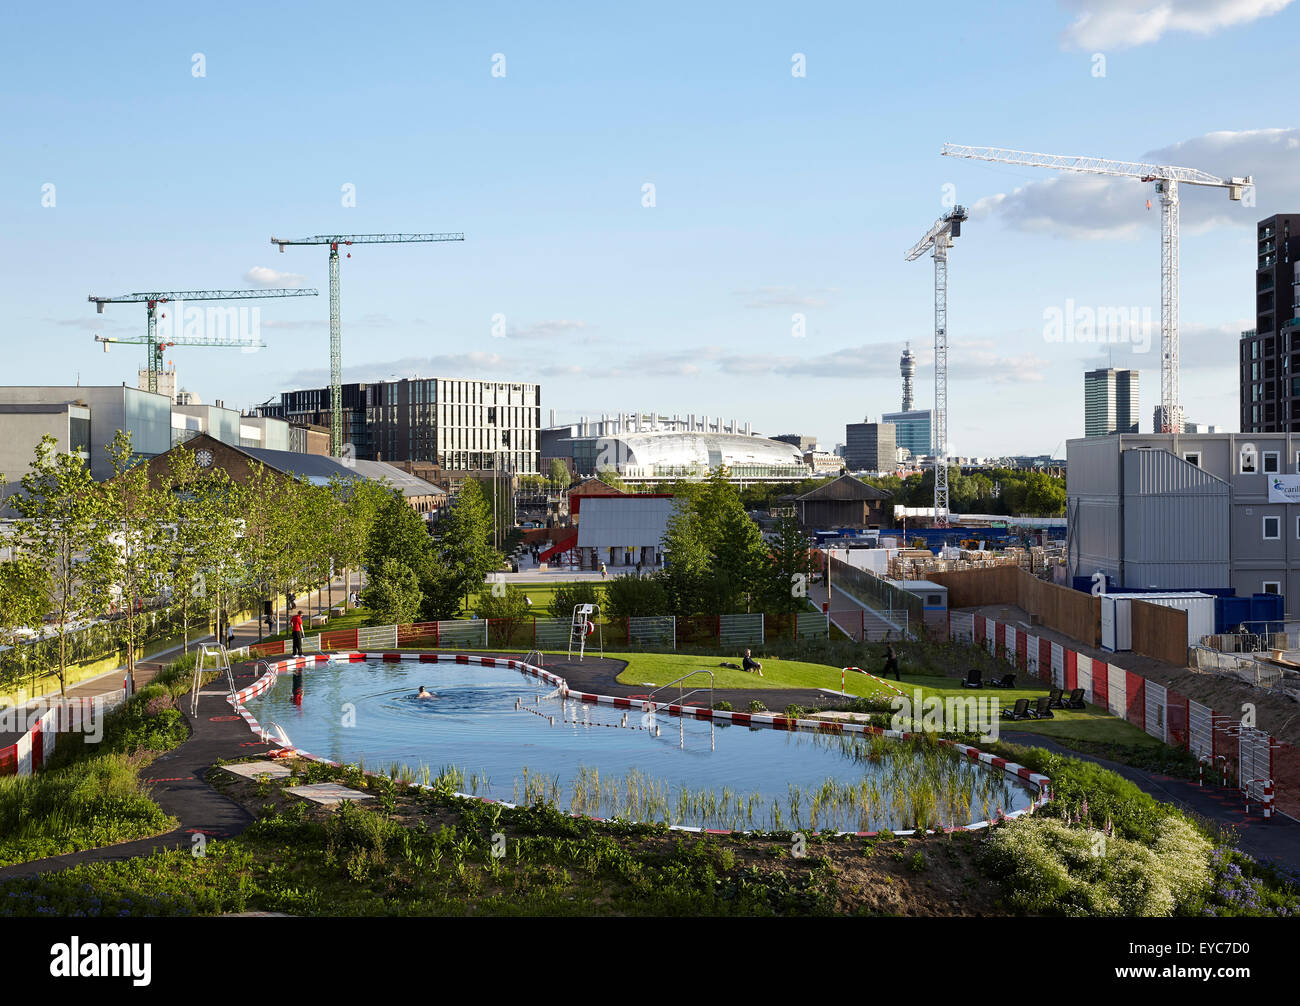 View of the pond with swimmers and a sunbather, cranes and development in the background. Kings Cross Pond Club, - Stock Image